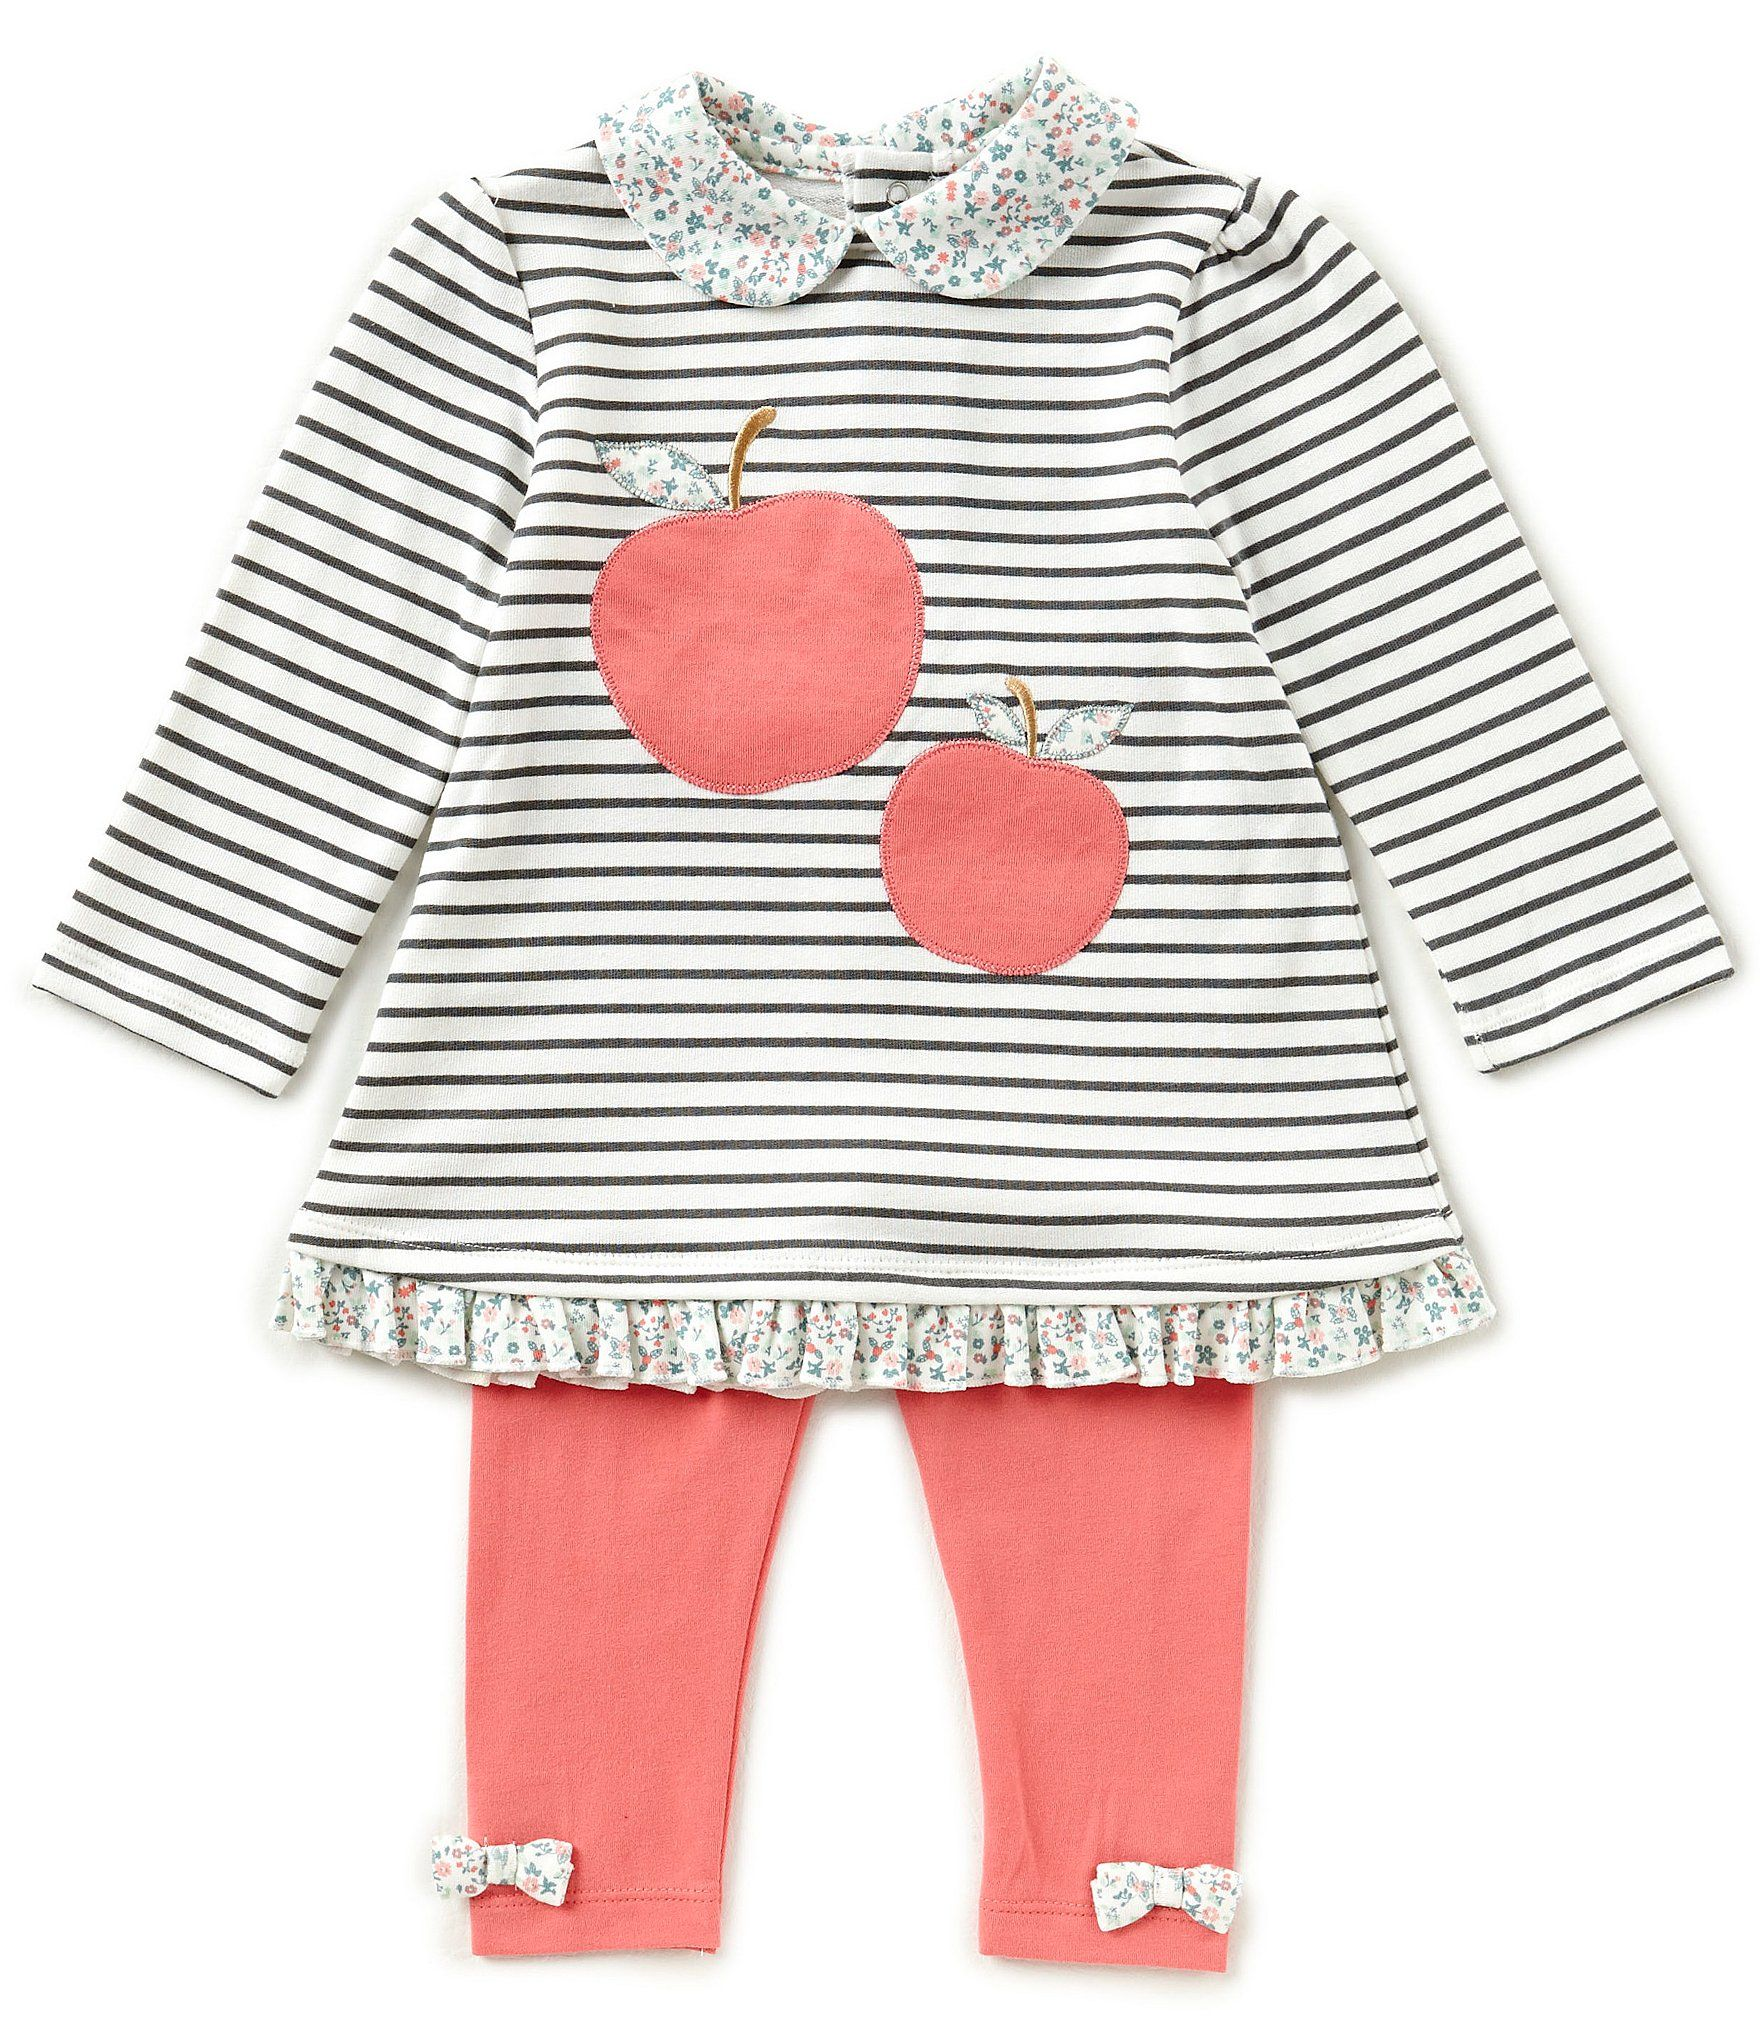 Starting Out Baby Girls 1224 Months Striped Apple Top and Leggings